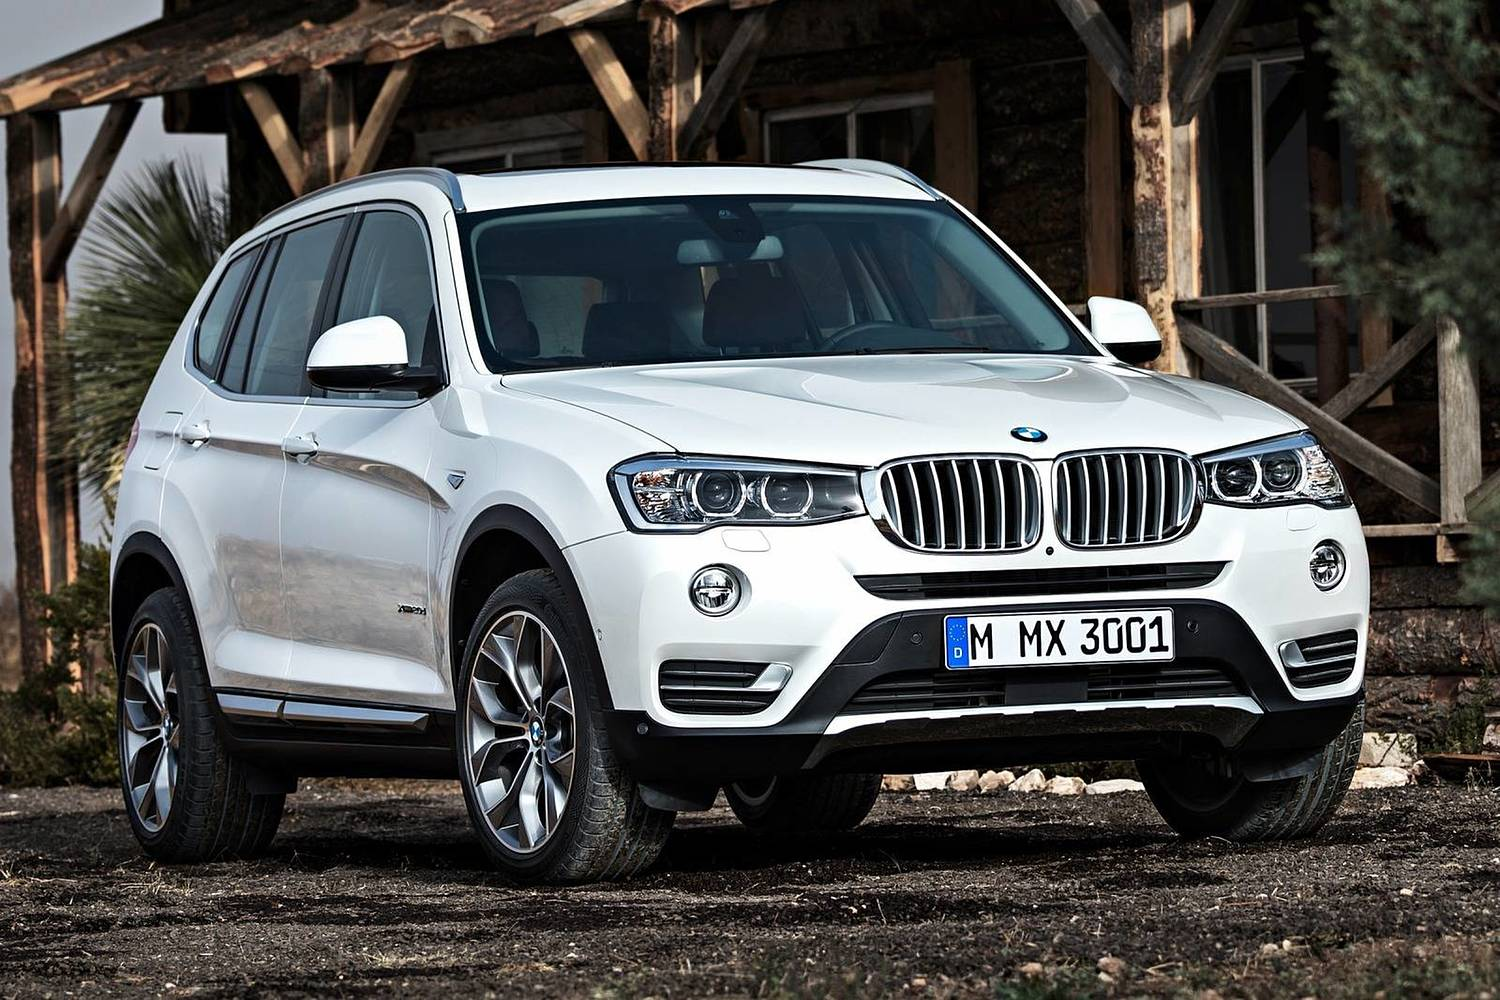 2017 BMW X3 xDrive28d 4dr SUV Exterior. xLine Package Shown.